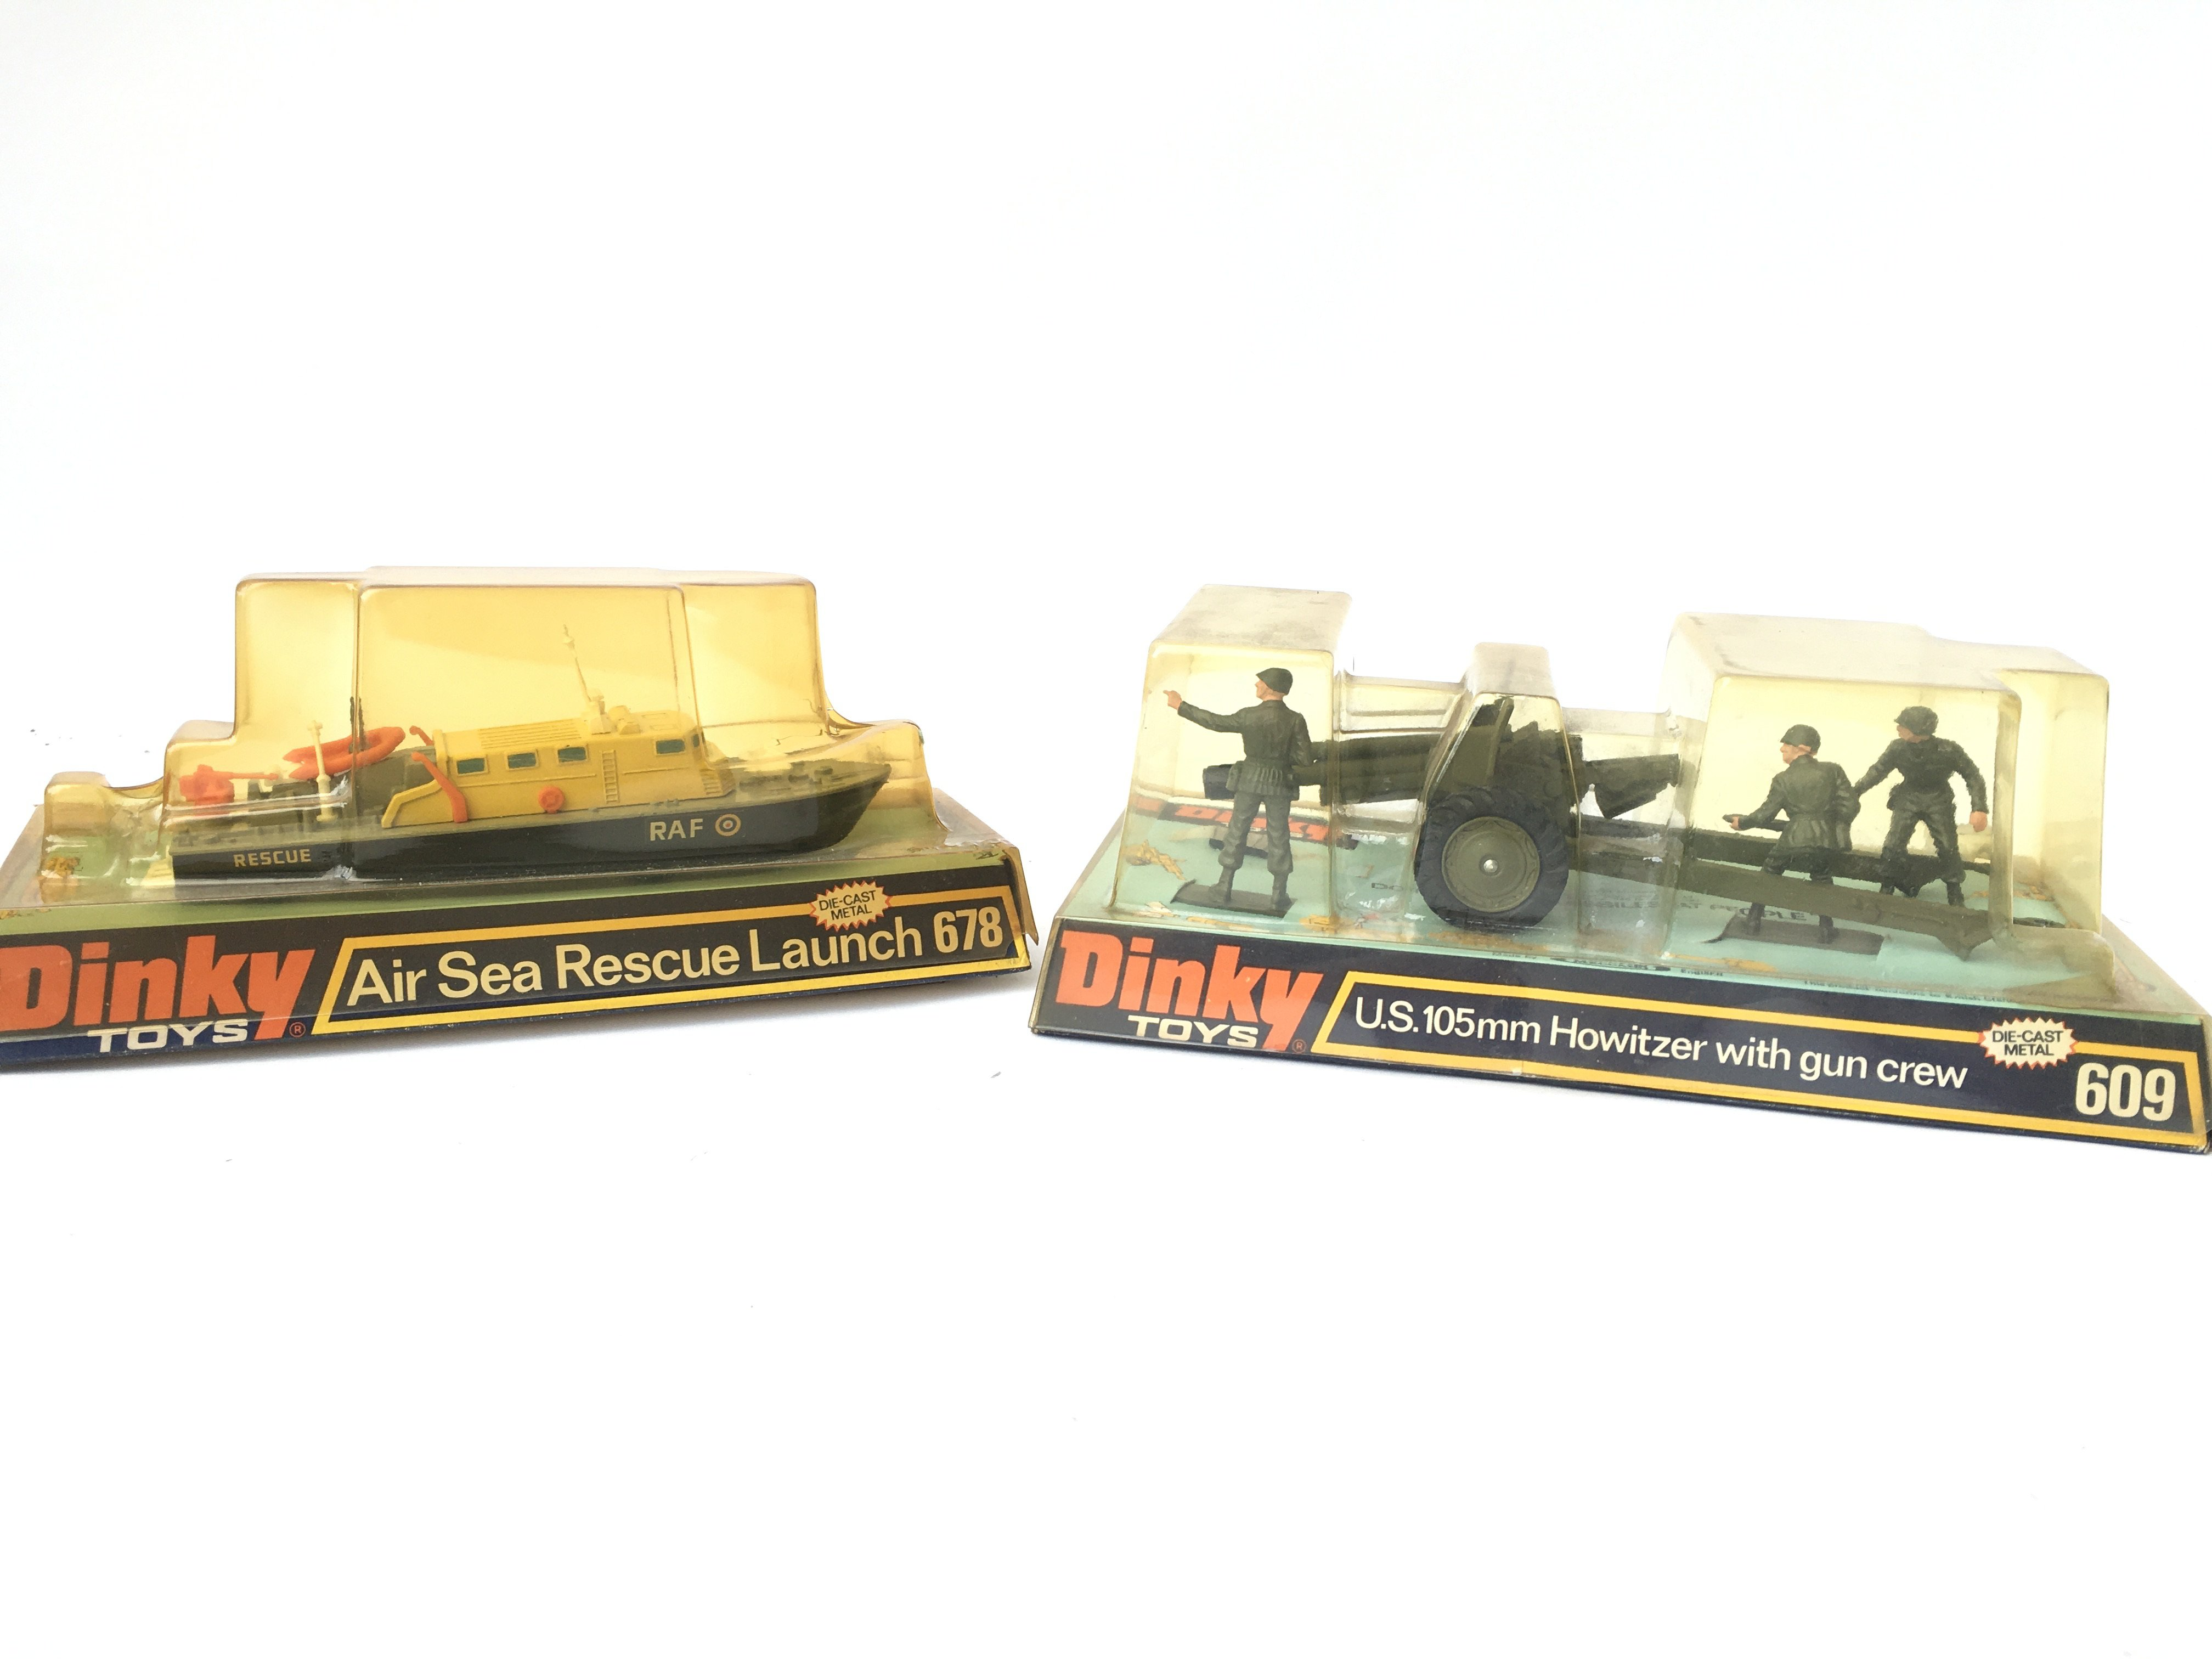 2 X Boxed Dinky Air Sea Rescue Launch #678 and a U